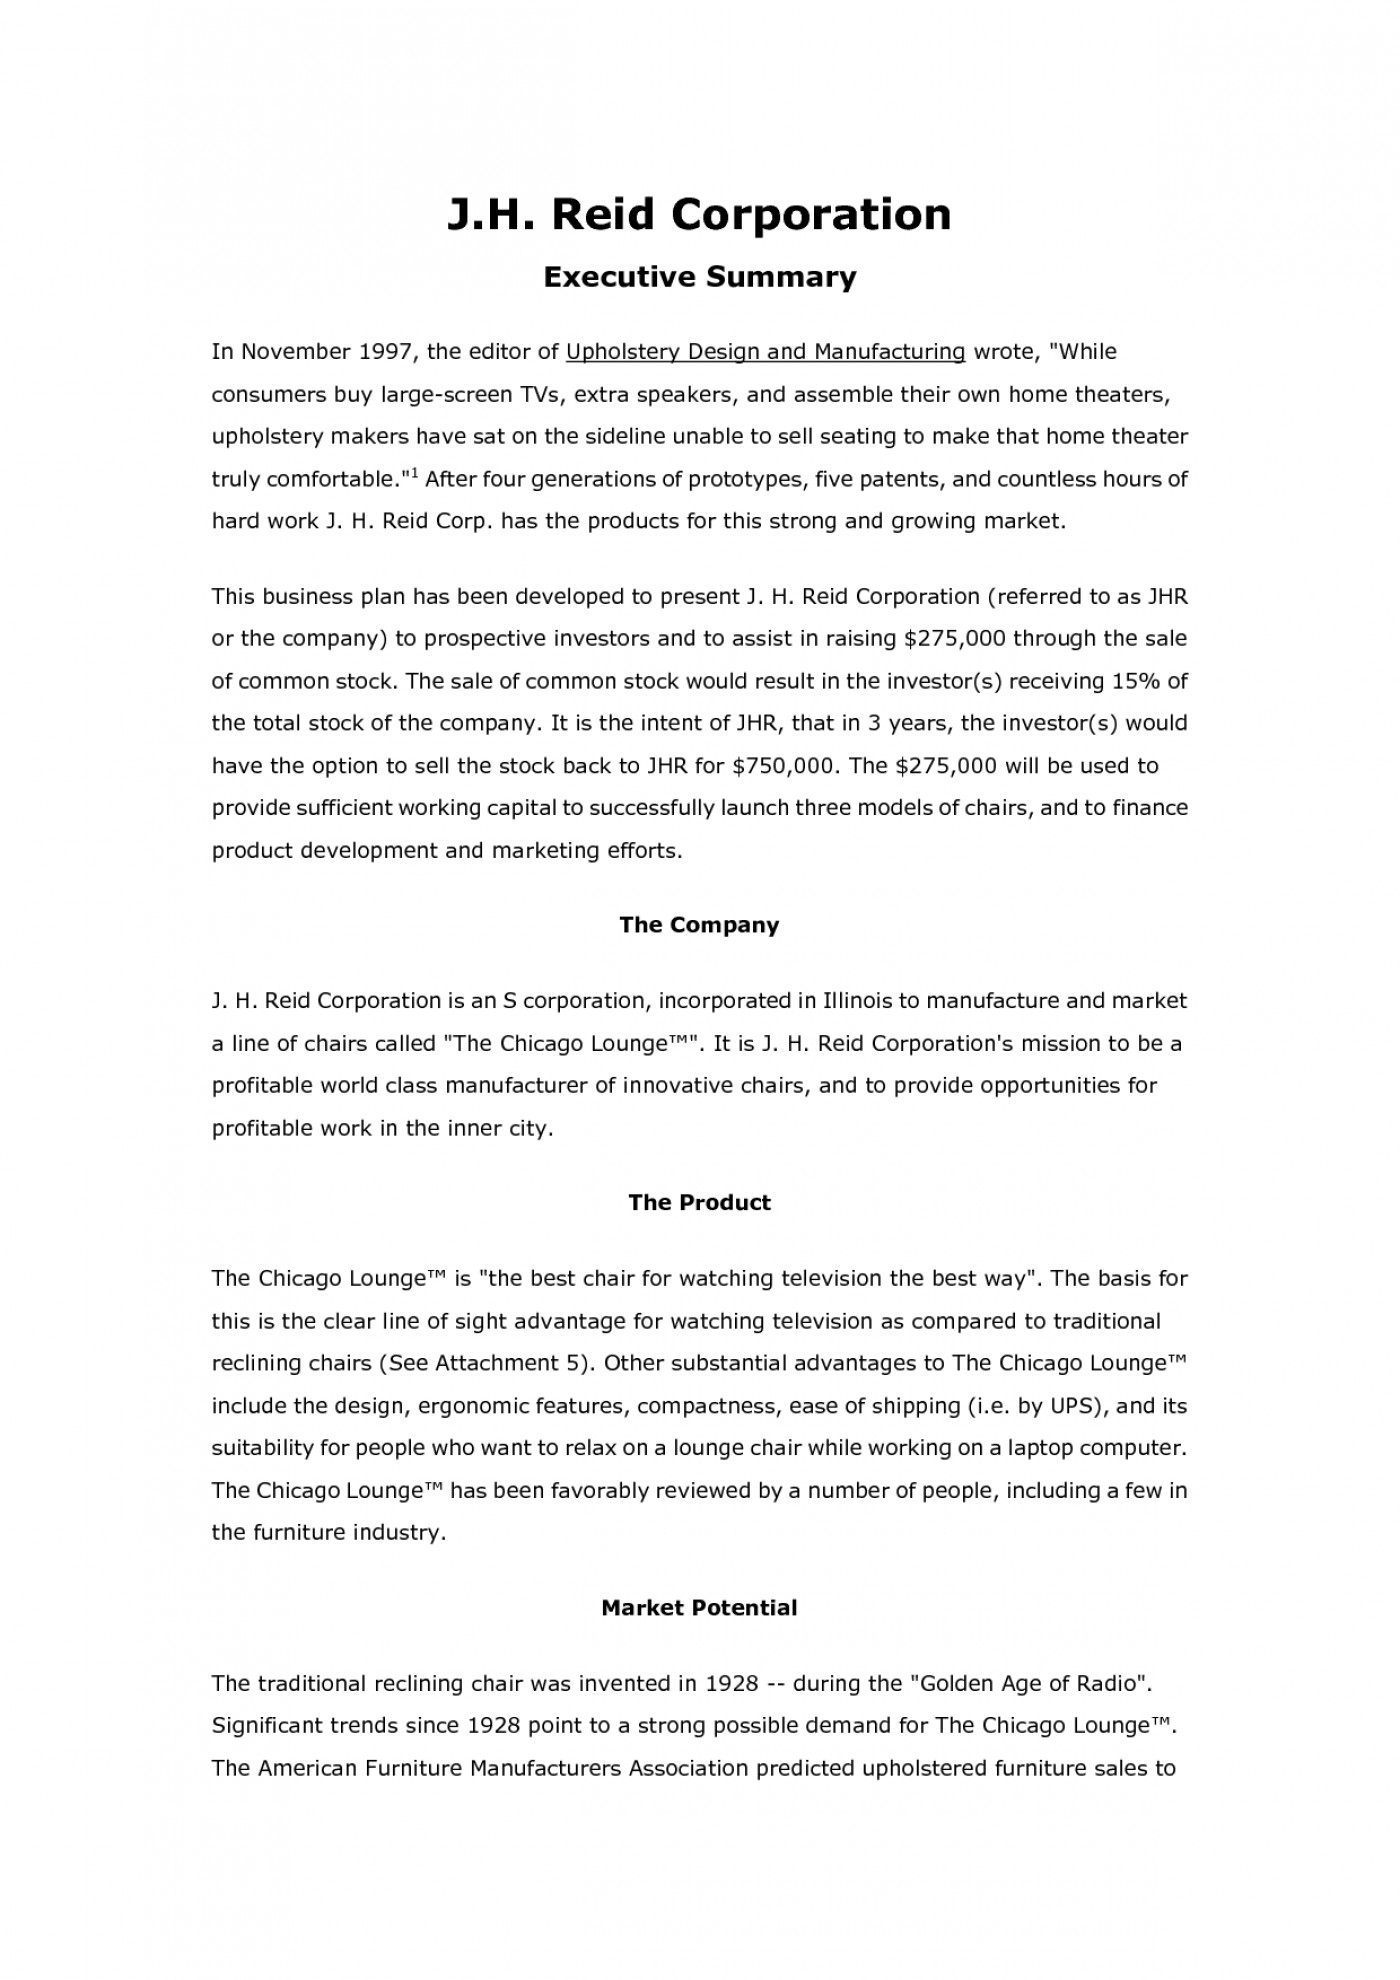 016 Hard Work Essay Example Business Plan Outstanding 1400